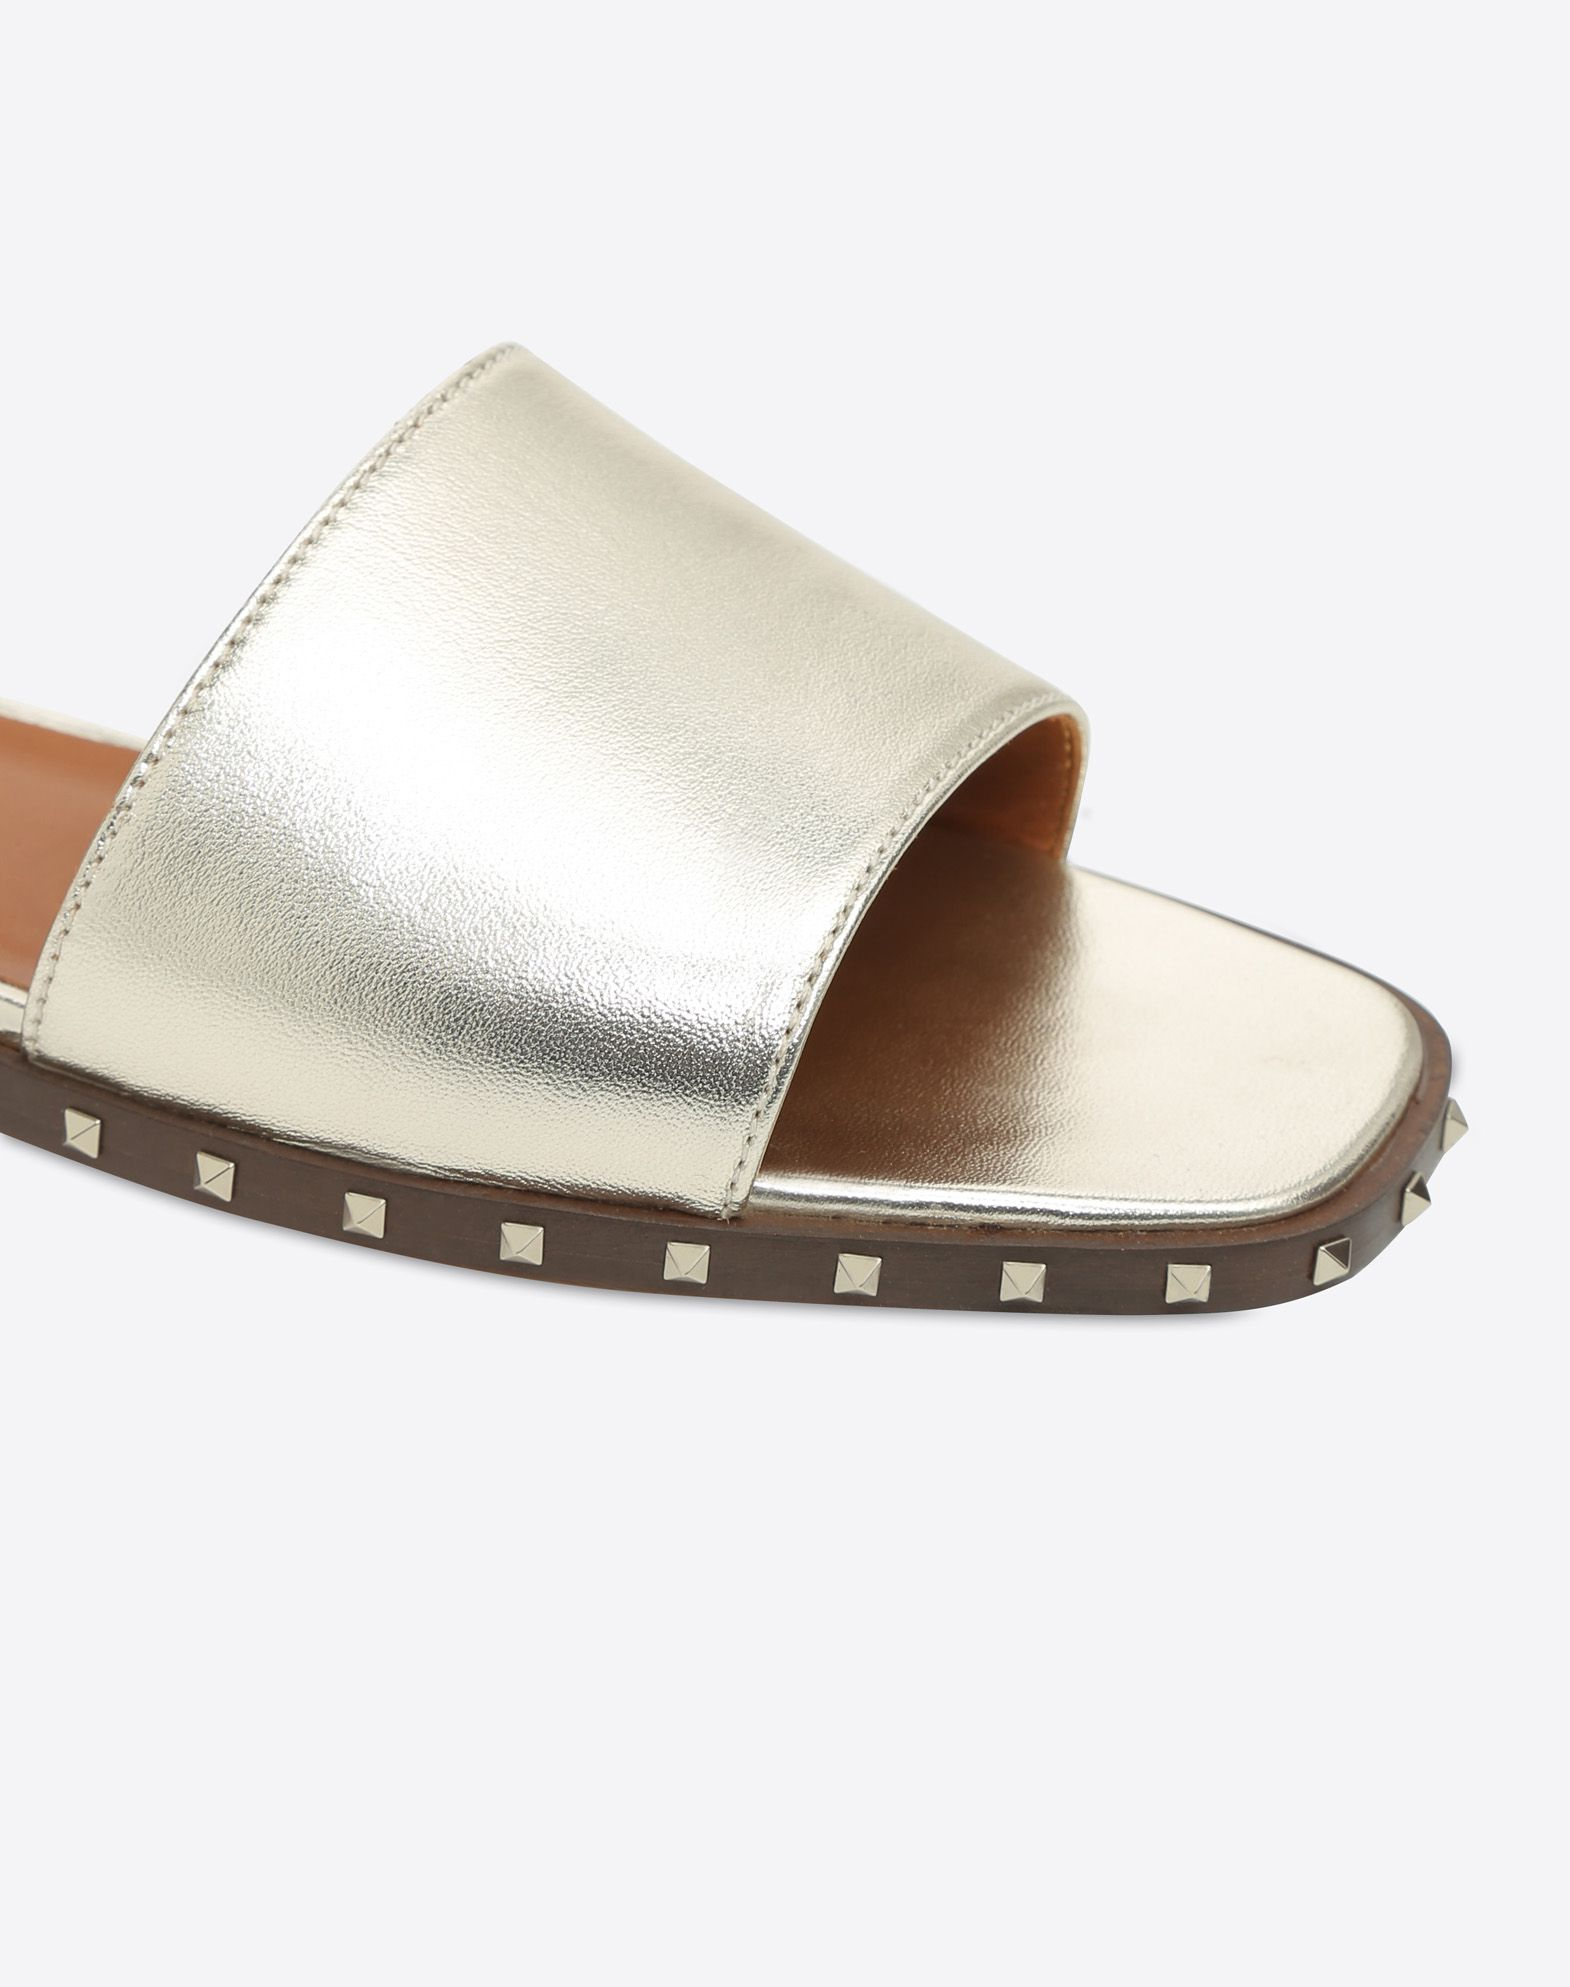 VALENTINO Studs Square toeline Solid color Leather sole  45378880mw